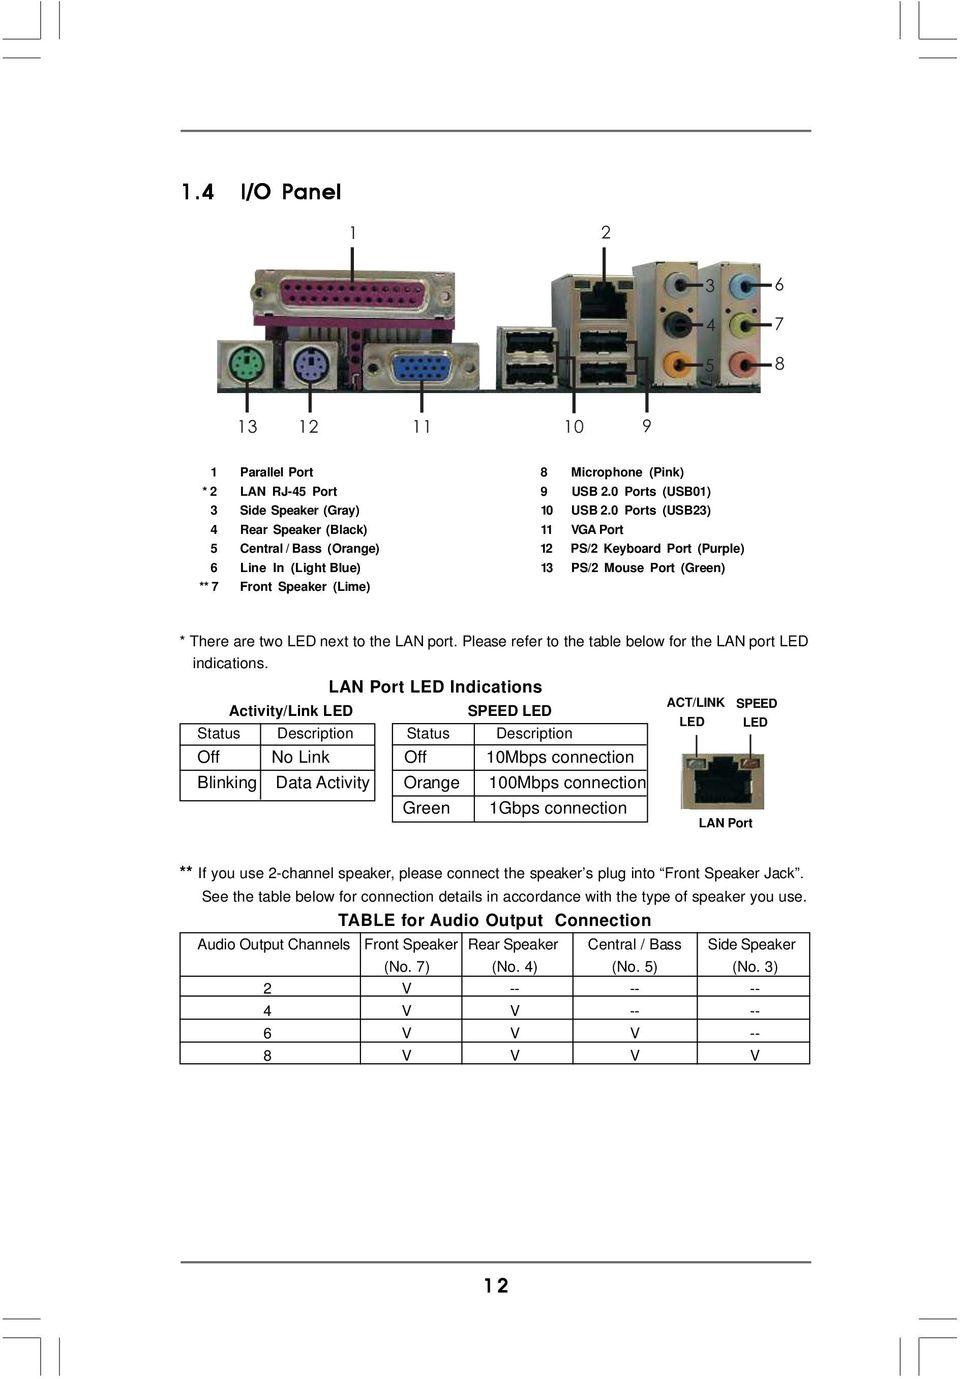 LED next to the LAN port. Please refer to the table below for the LAN port LED indications.